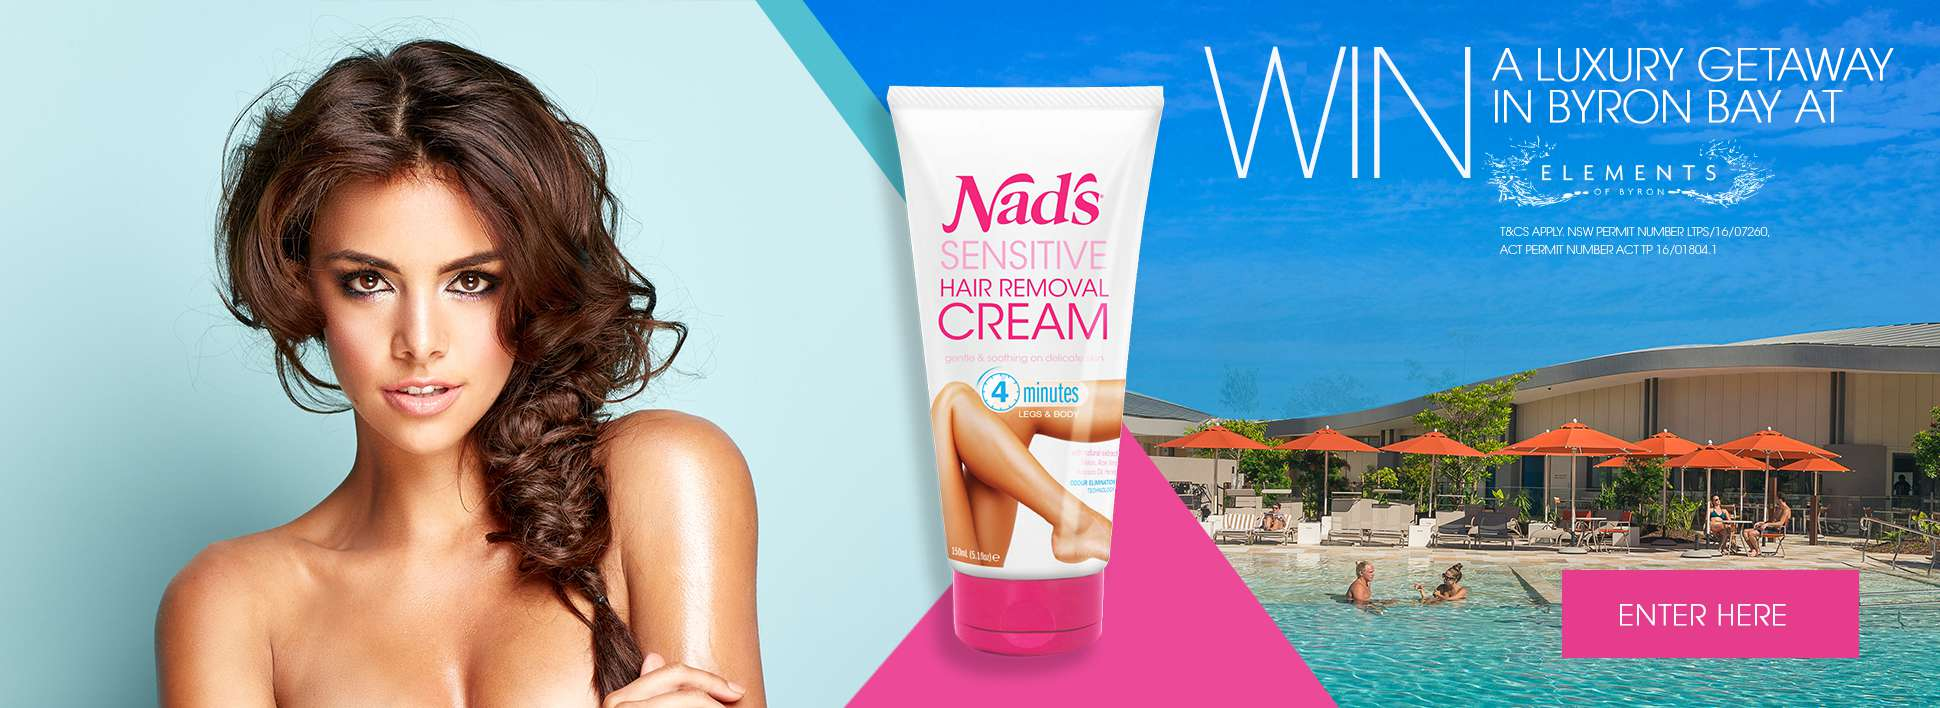 Nad's New Sensitive Hair Removal Cream - Win Byron Bay Competition